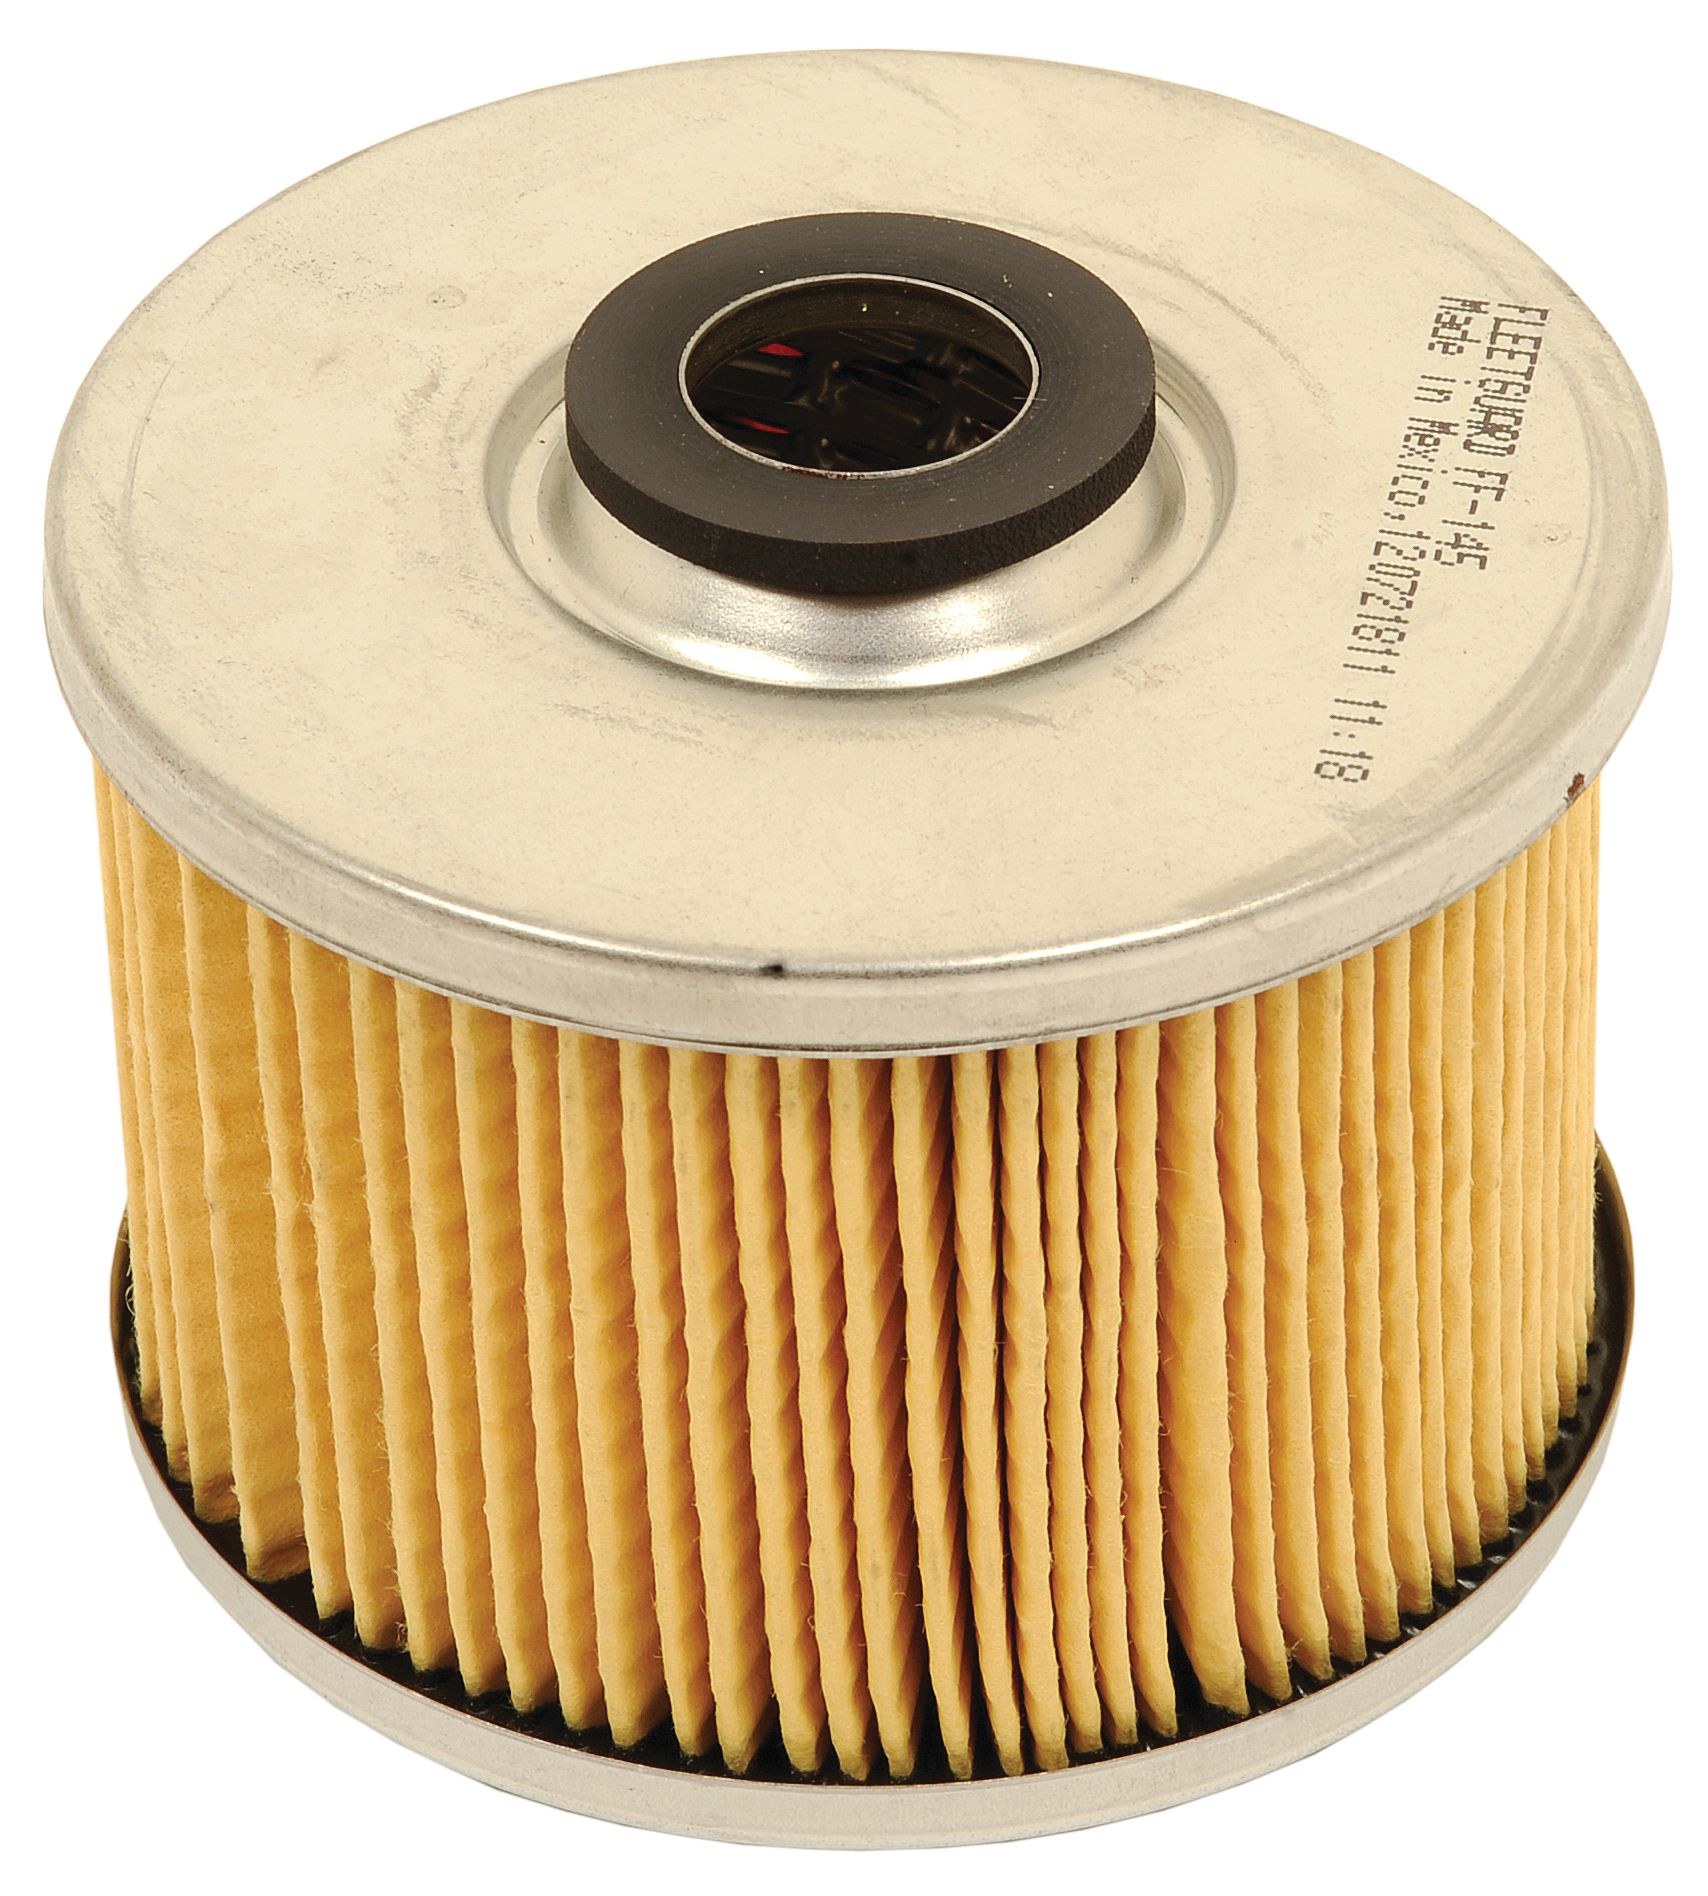 MATBRO FUEL FILTER FF145 40541